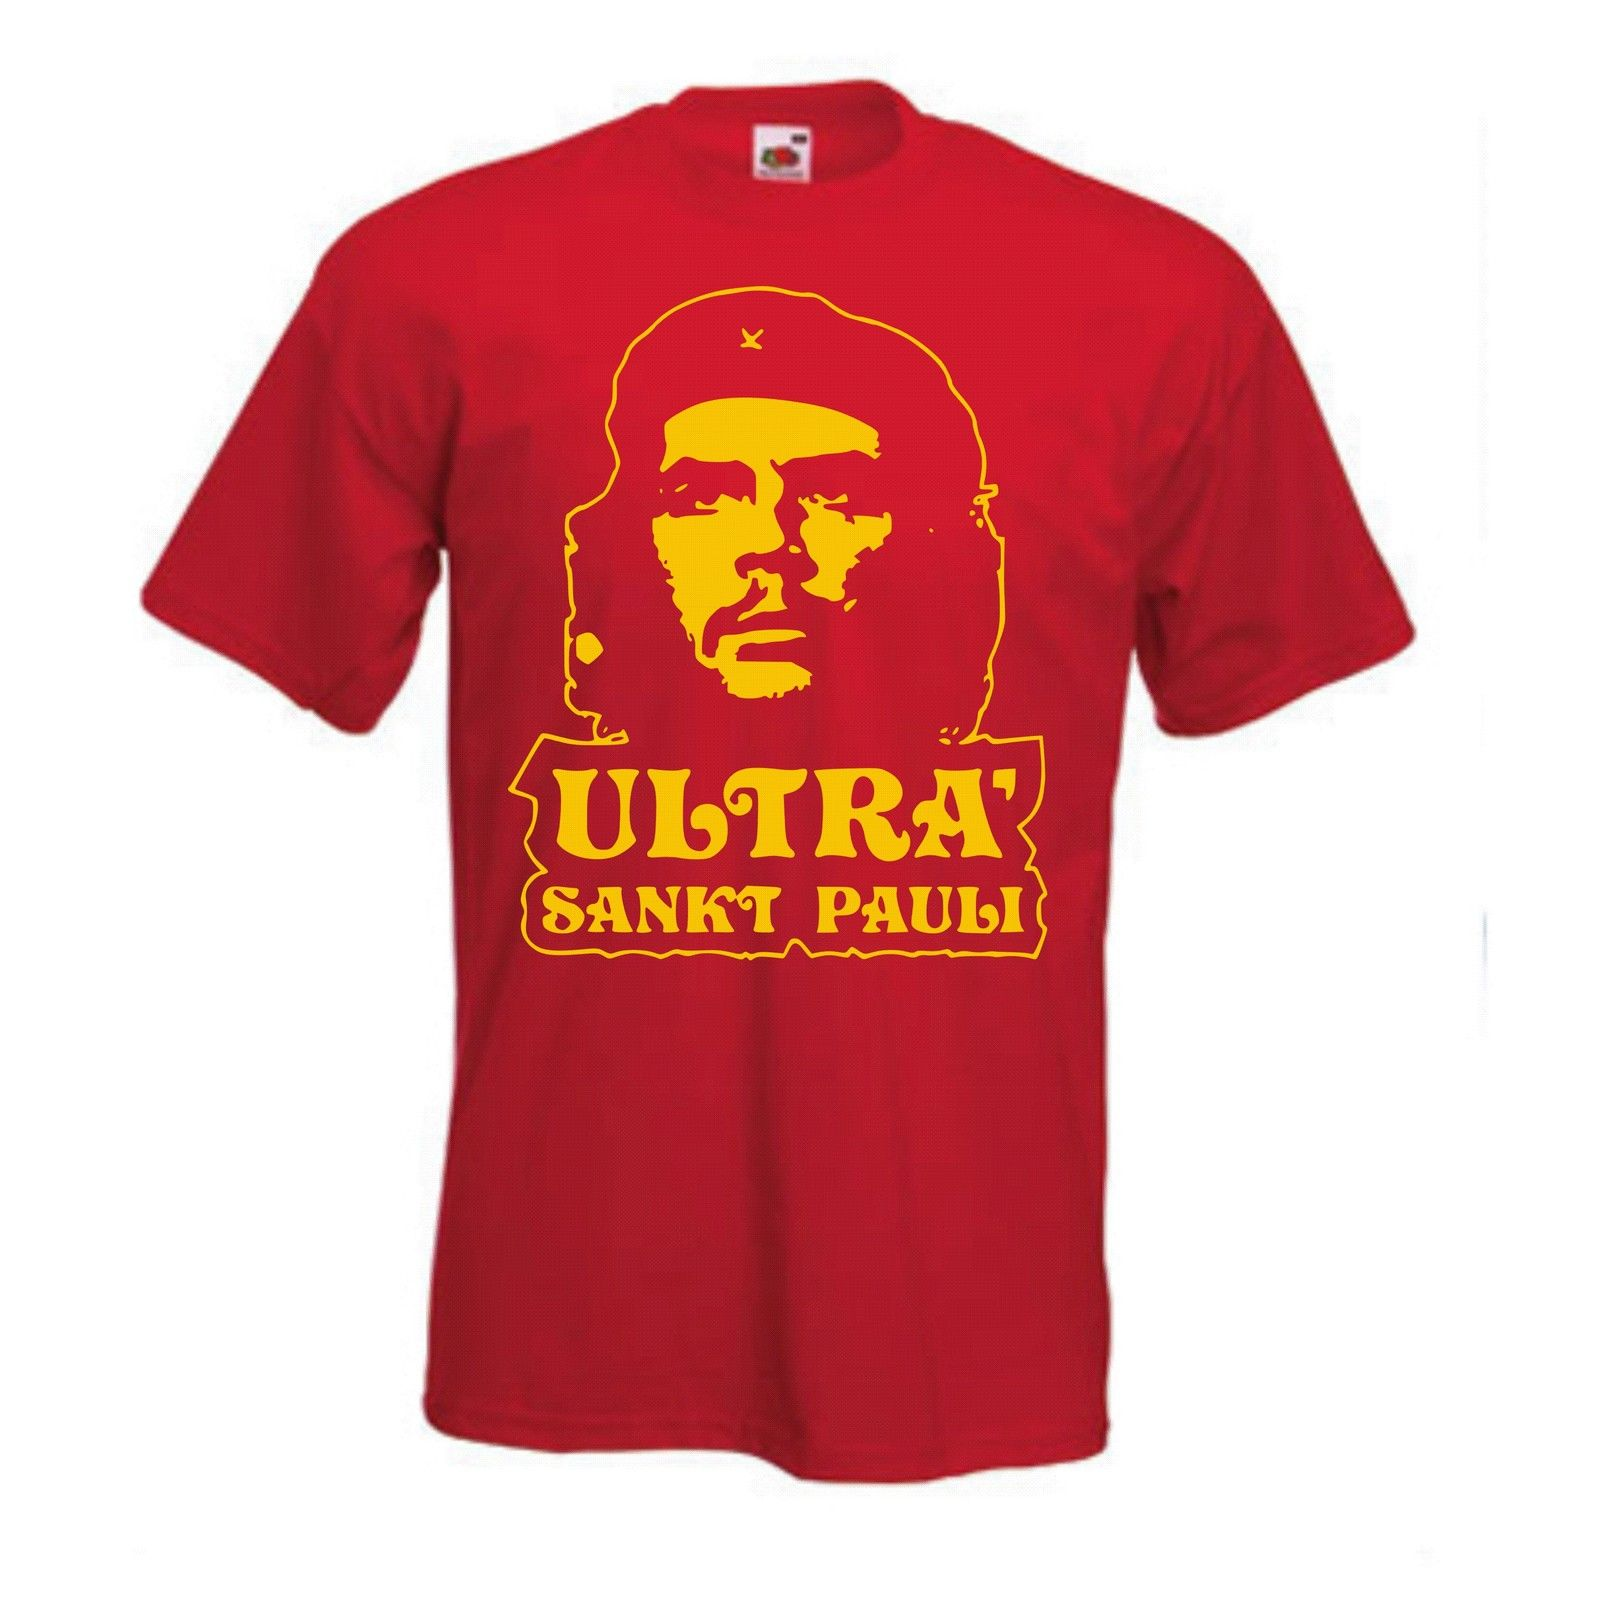 Design t shirt ultras - Aliexpress Com Buy St Pauli Che Guevara T Shirt Ultra Fanshirt Punk Footballerer All Design Men S T Shirts 100 Cotton Short Sleeve Tee From Reliable Che